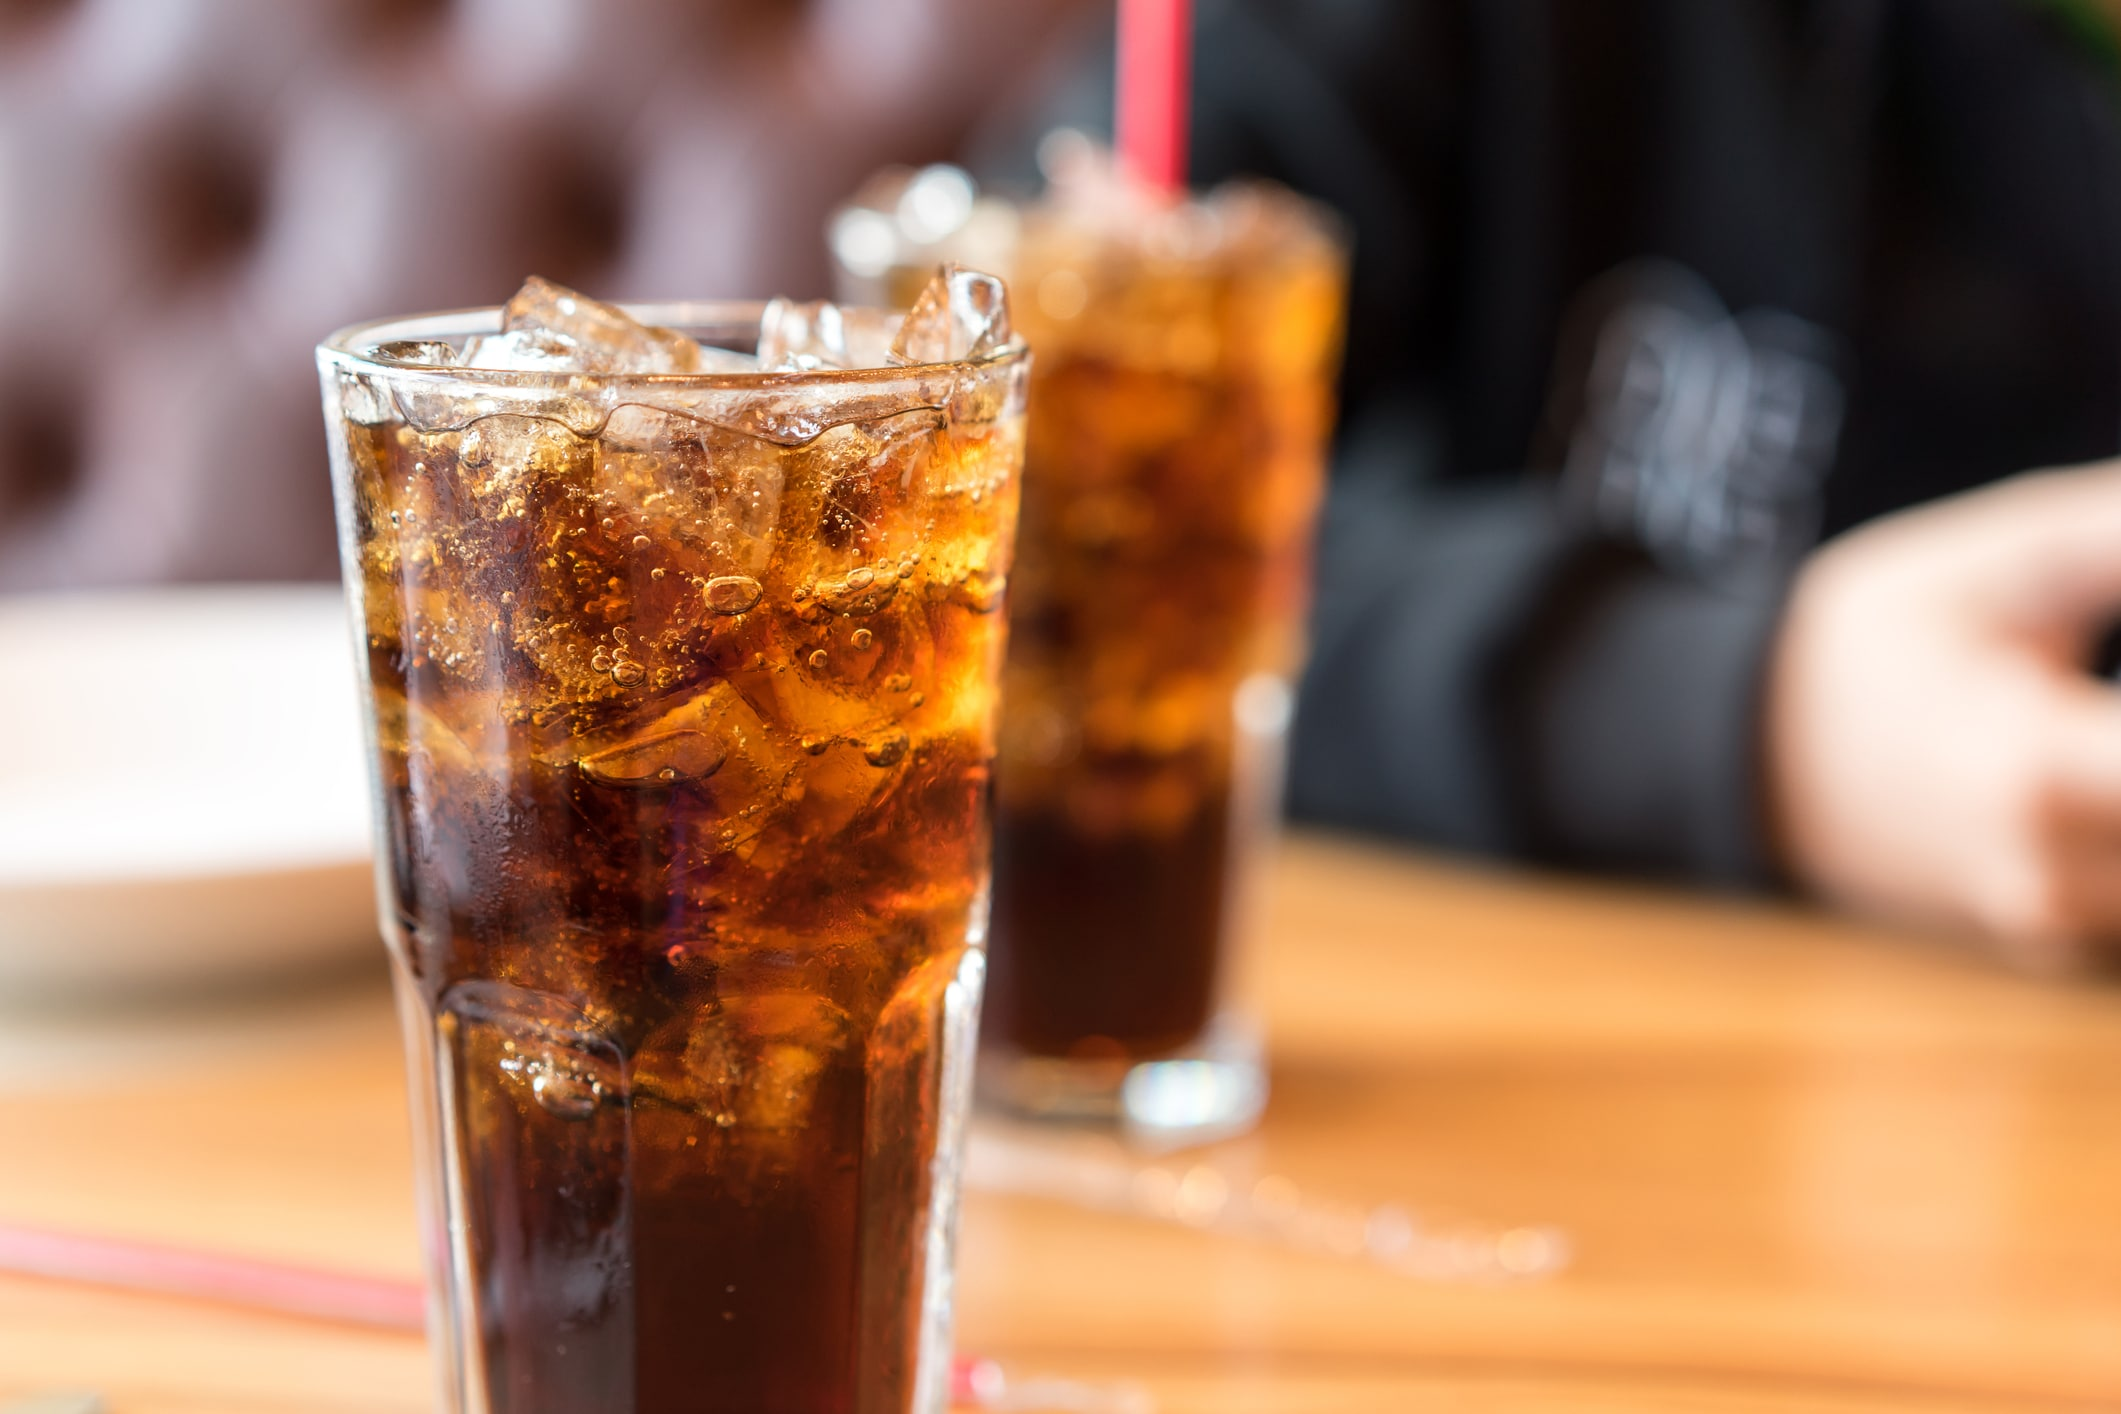 Artificially Sweetened Drinks Could Be As Bad For Your Heart As Sugary Beverages